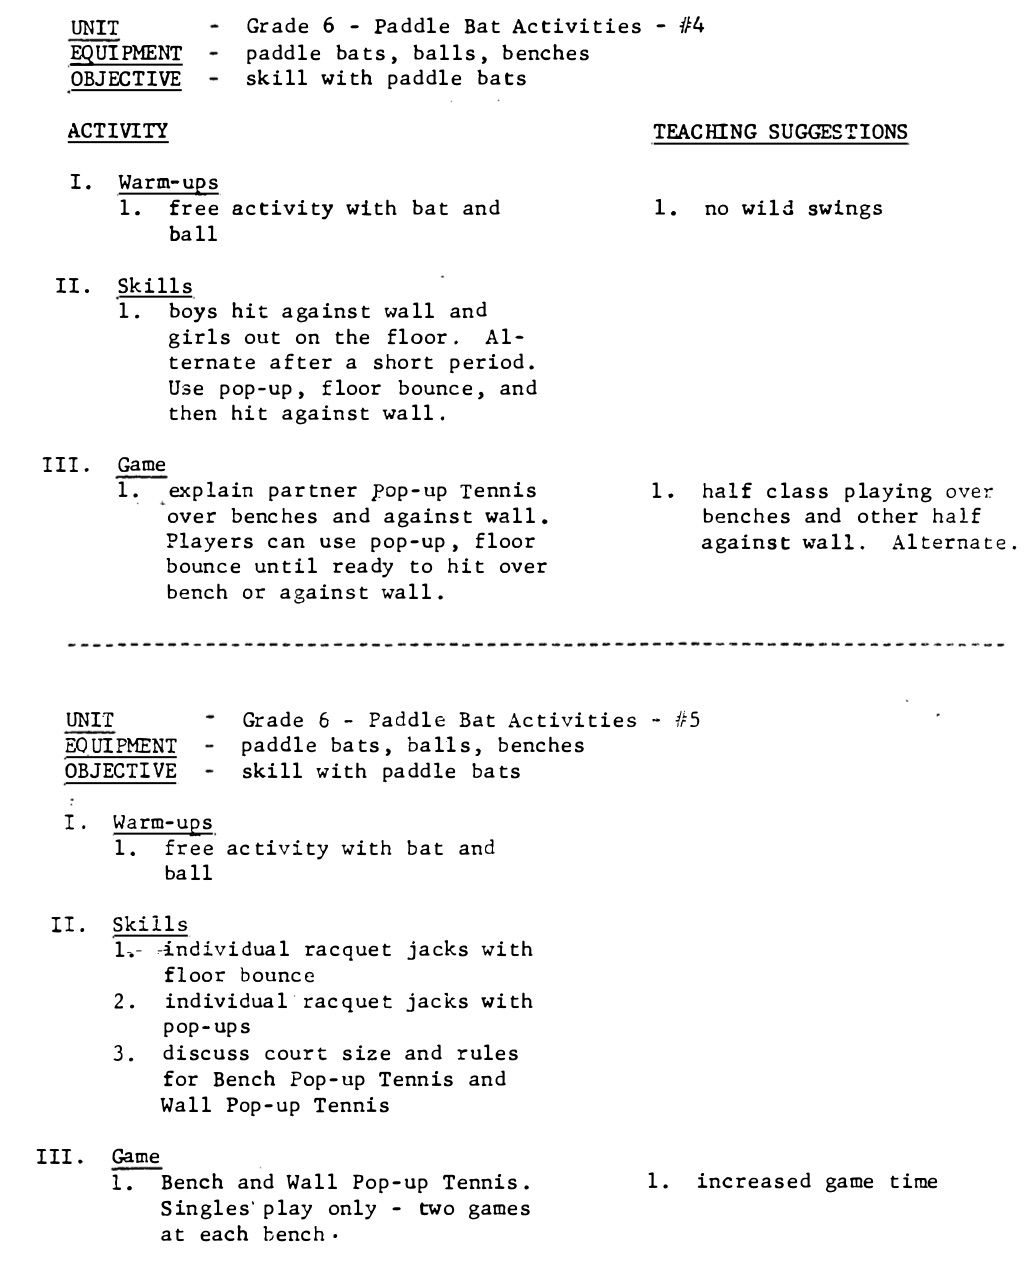 Physical education program grade 6 page 48 professional